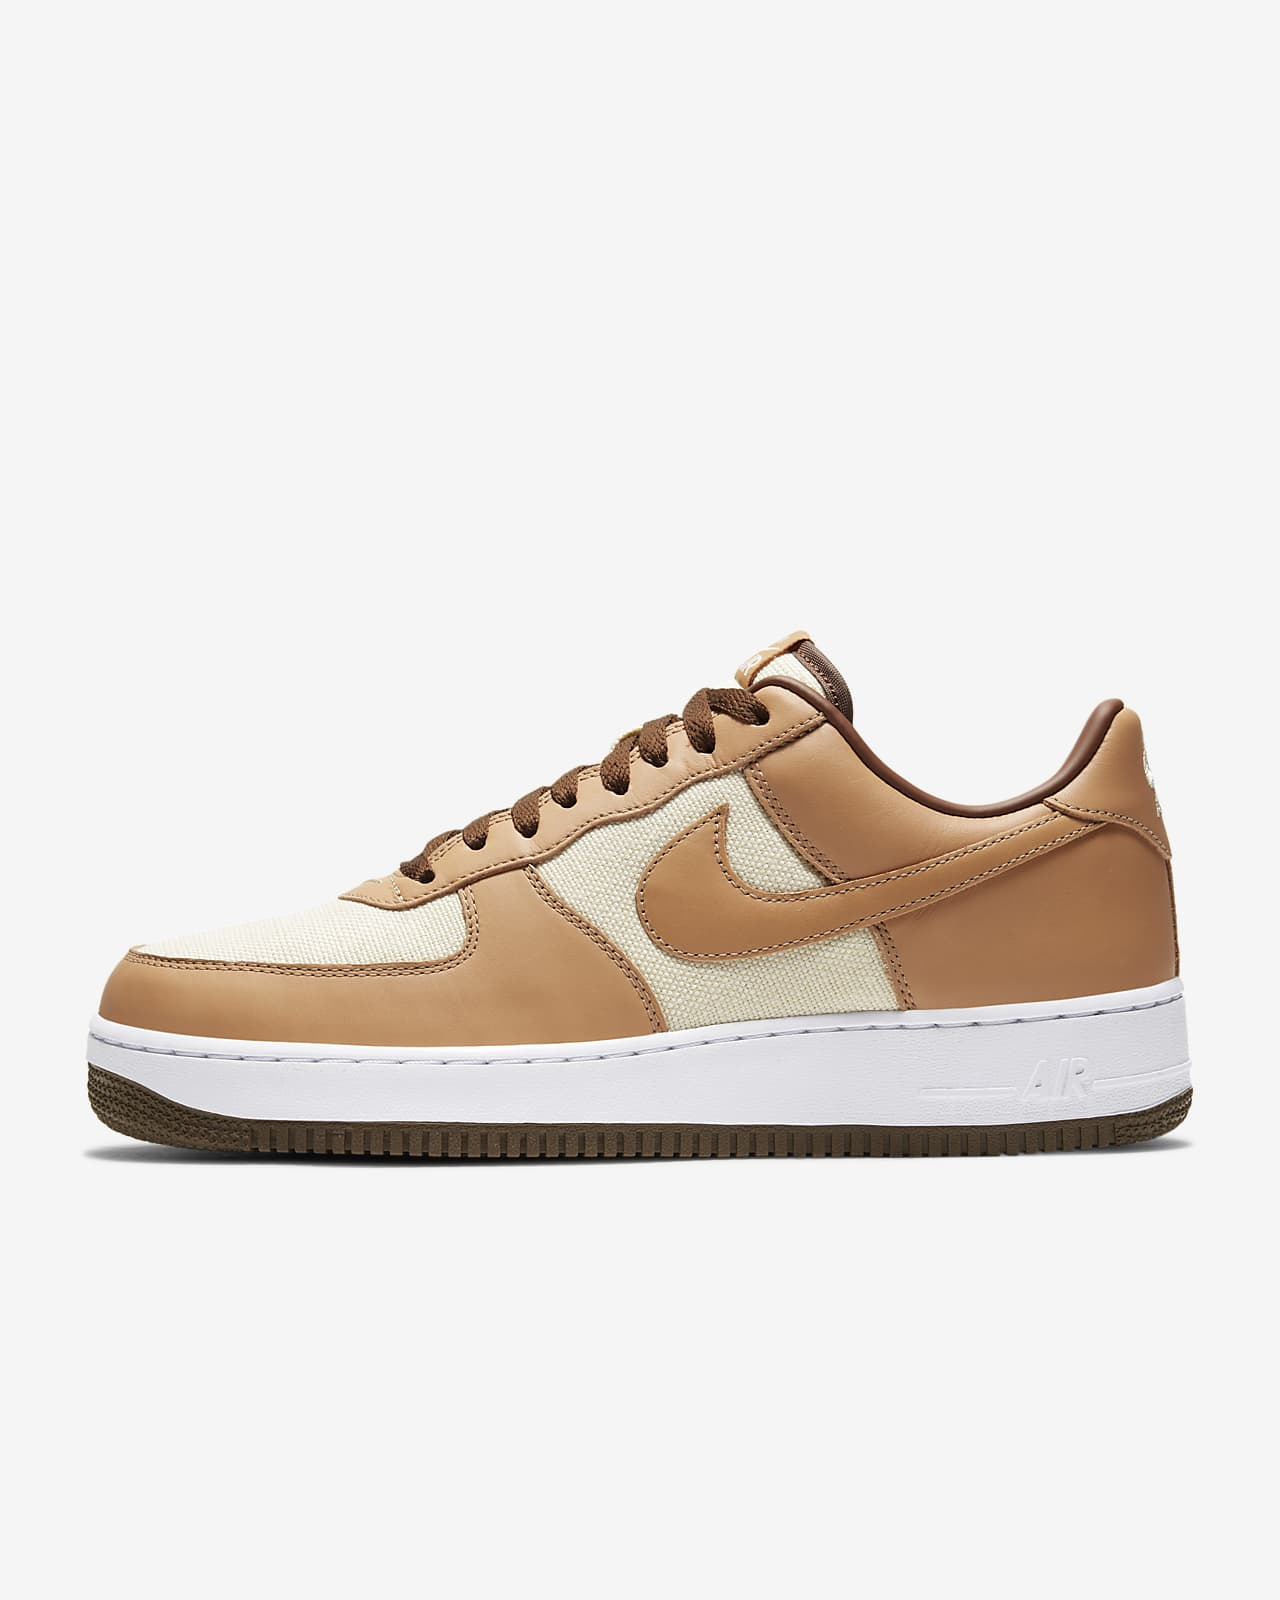 Nike Air Force 1 Men's Shoes